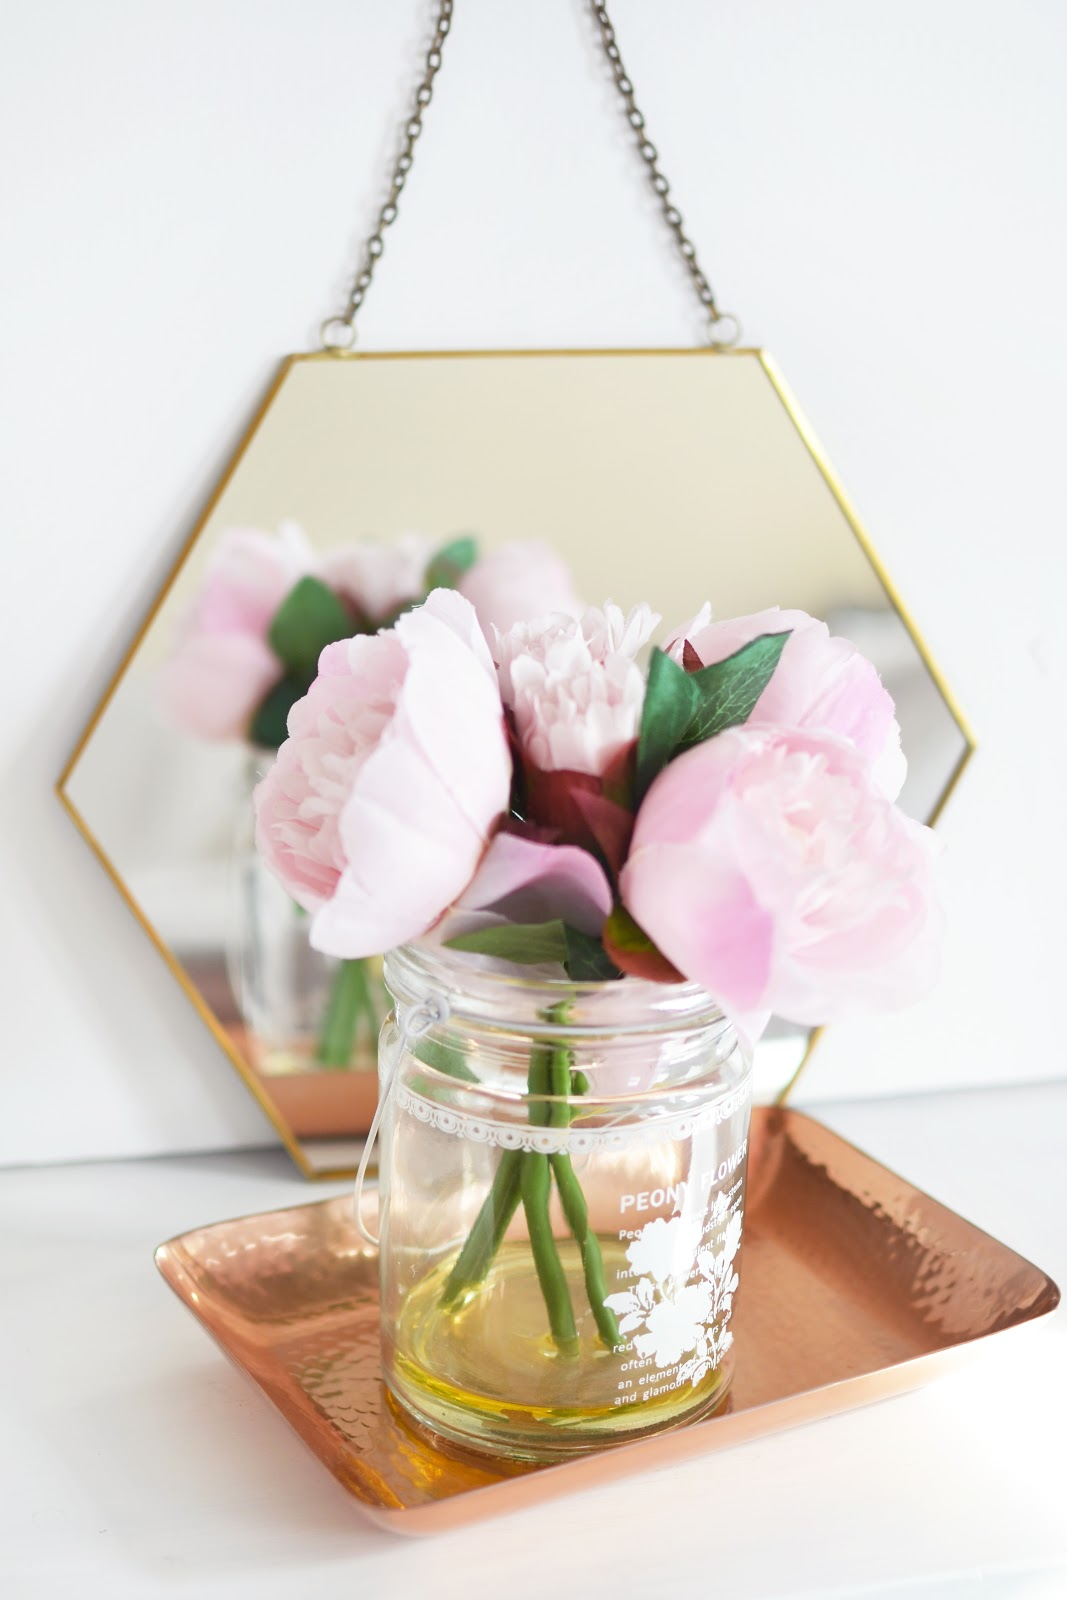 oliver bonas homeware haul, hexagon mirror, copper tray